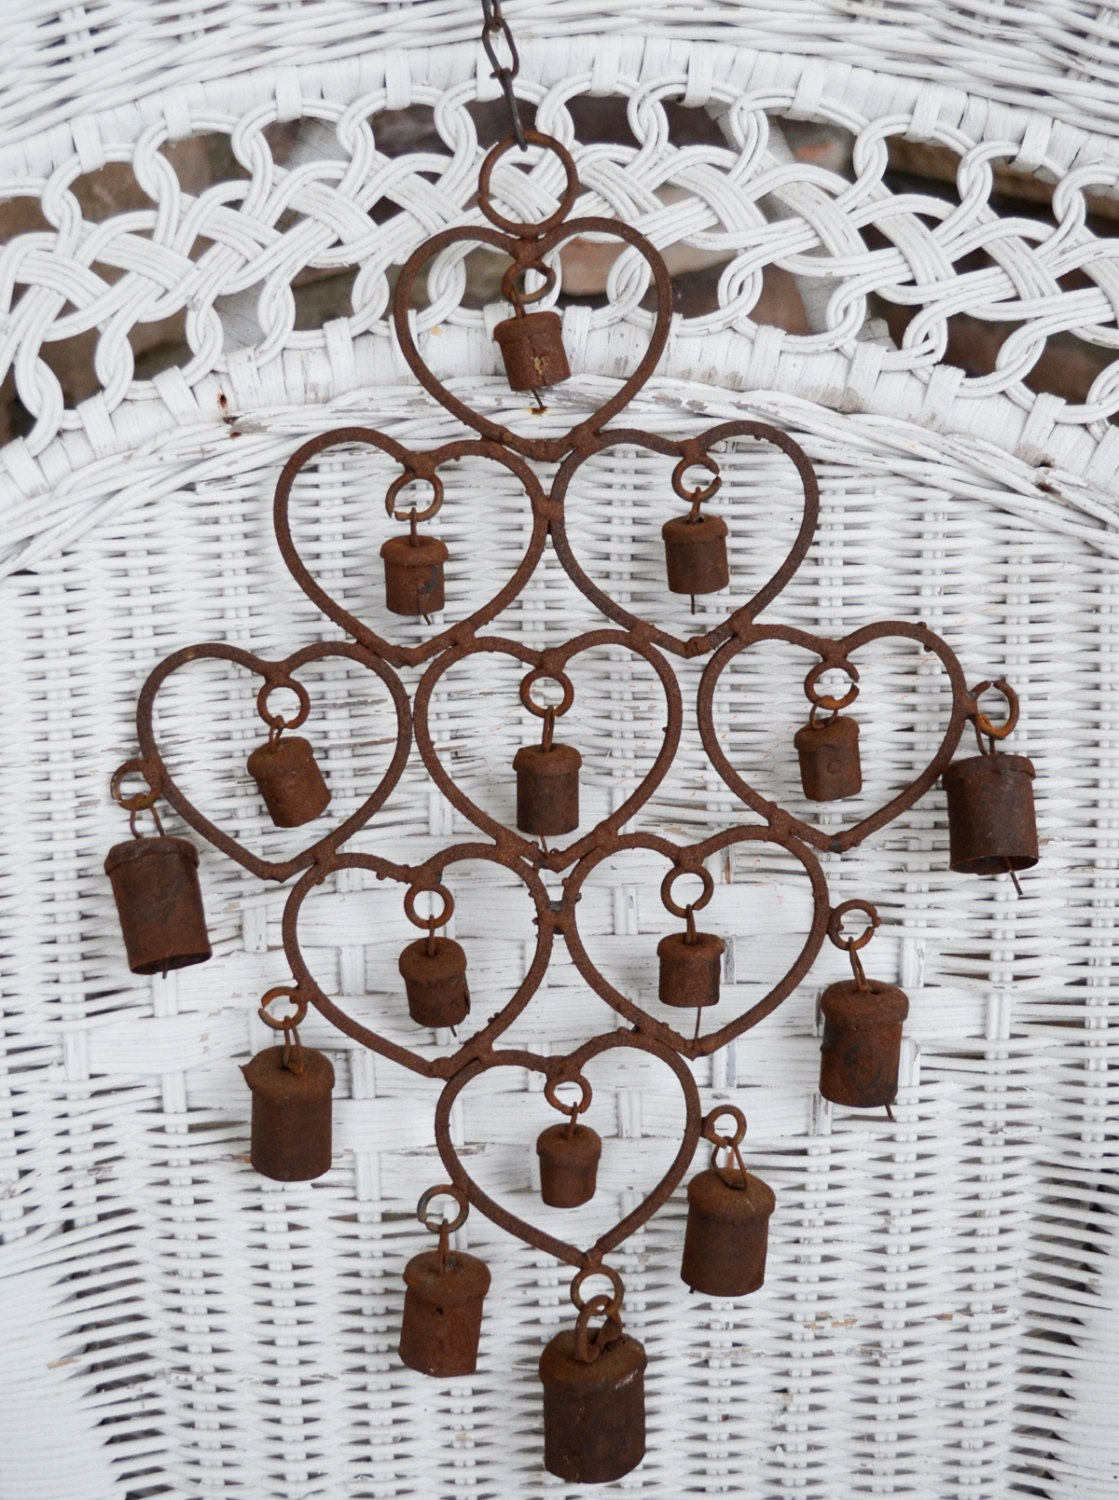 Vintage Rusty Rustic Metal Bell Windchime With Heart